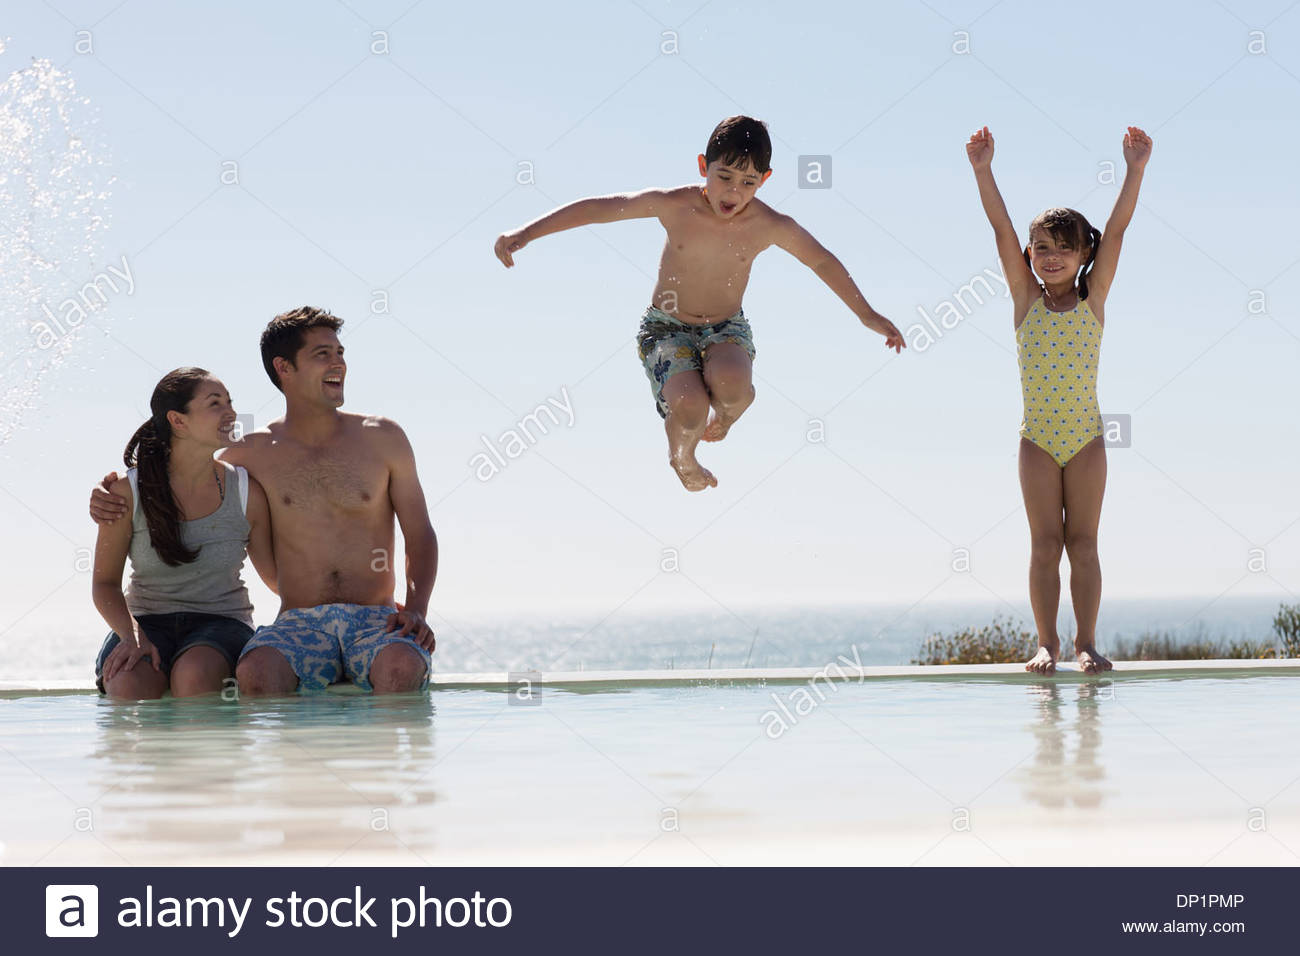 Family playing in swimming pool - Stock Image